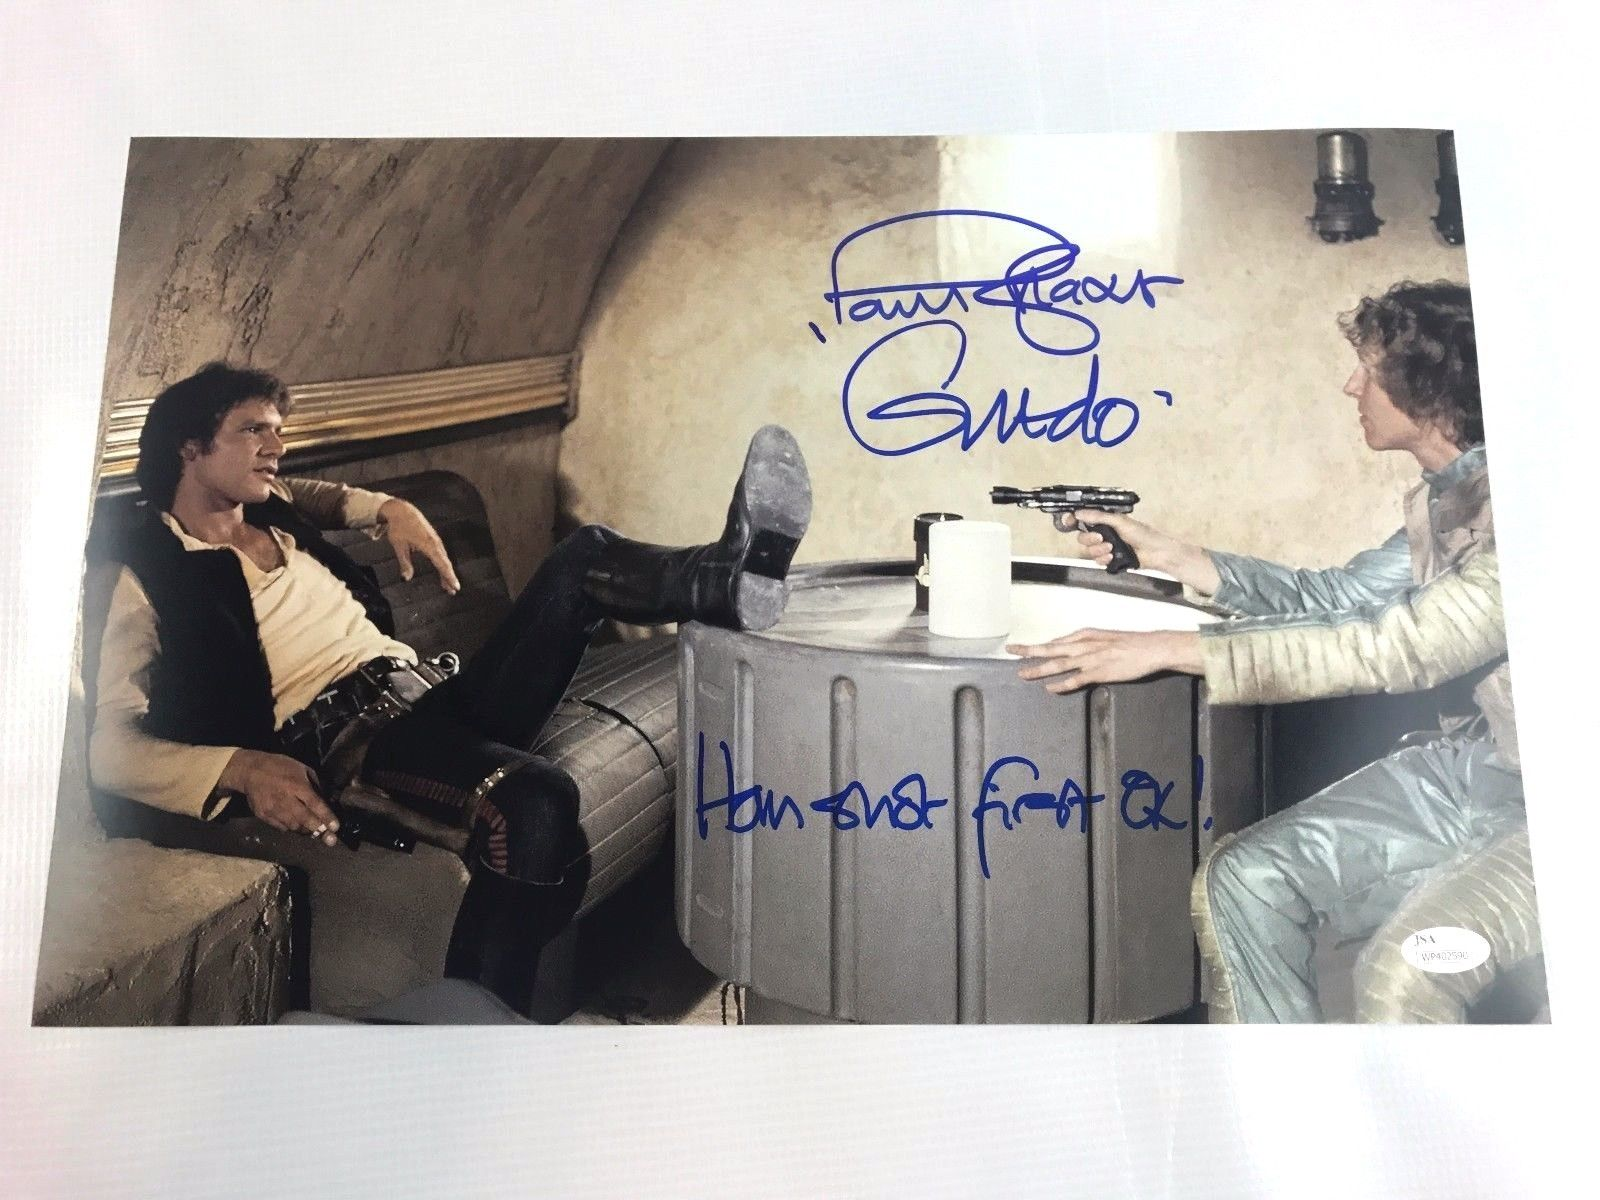 Paul Blake Authentic Autograph 11x17 Photo Greedo Signed JSA Star Wars Han Solo